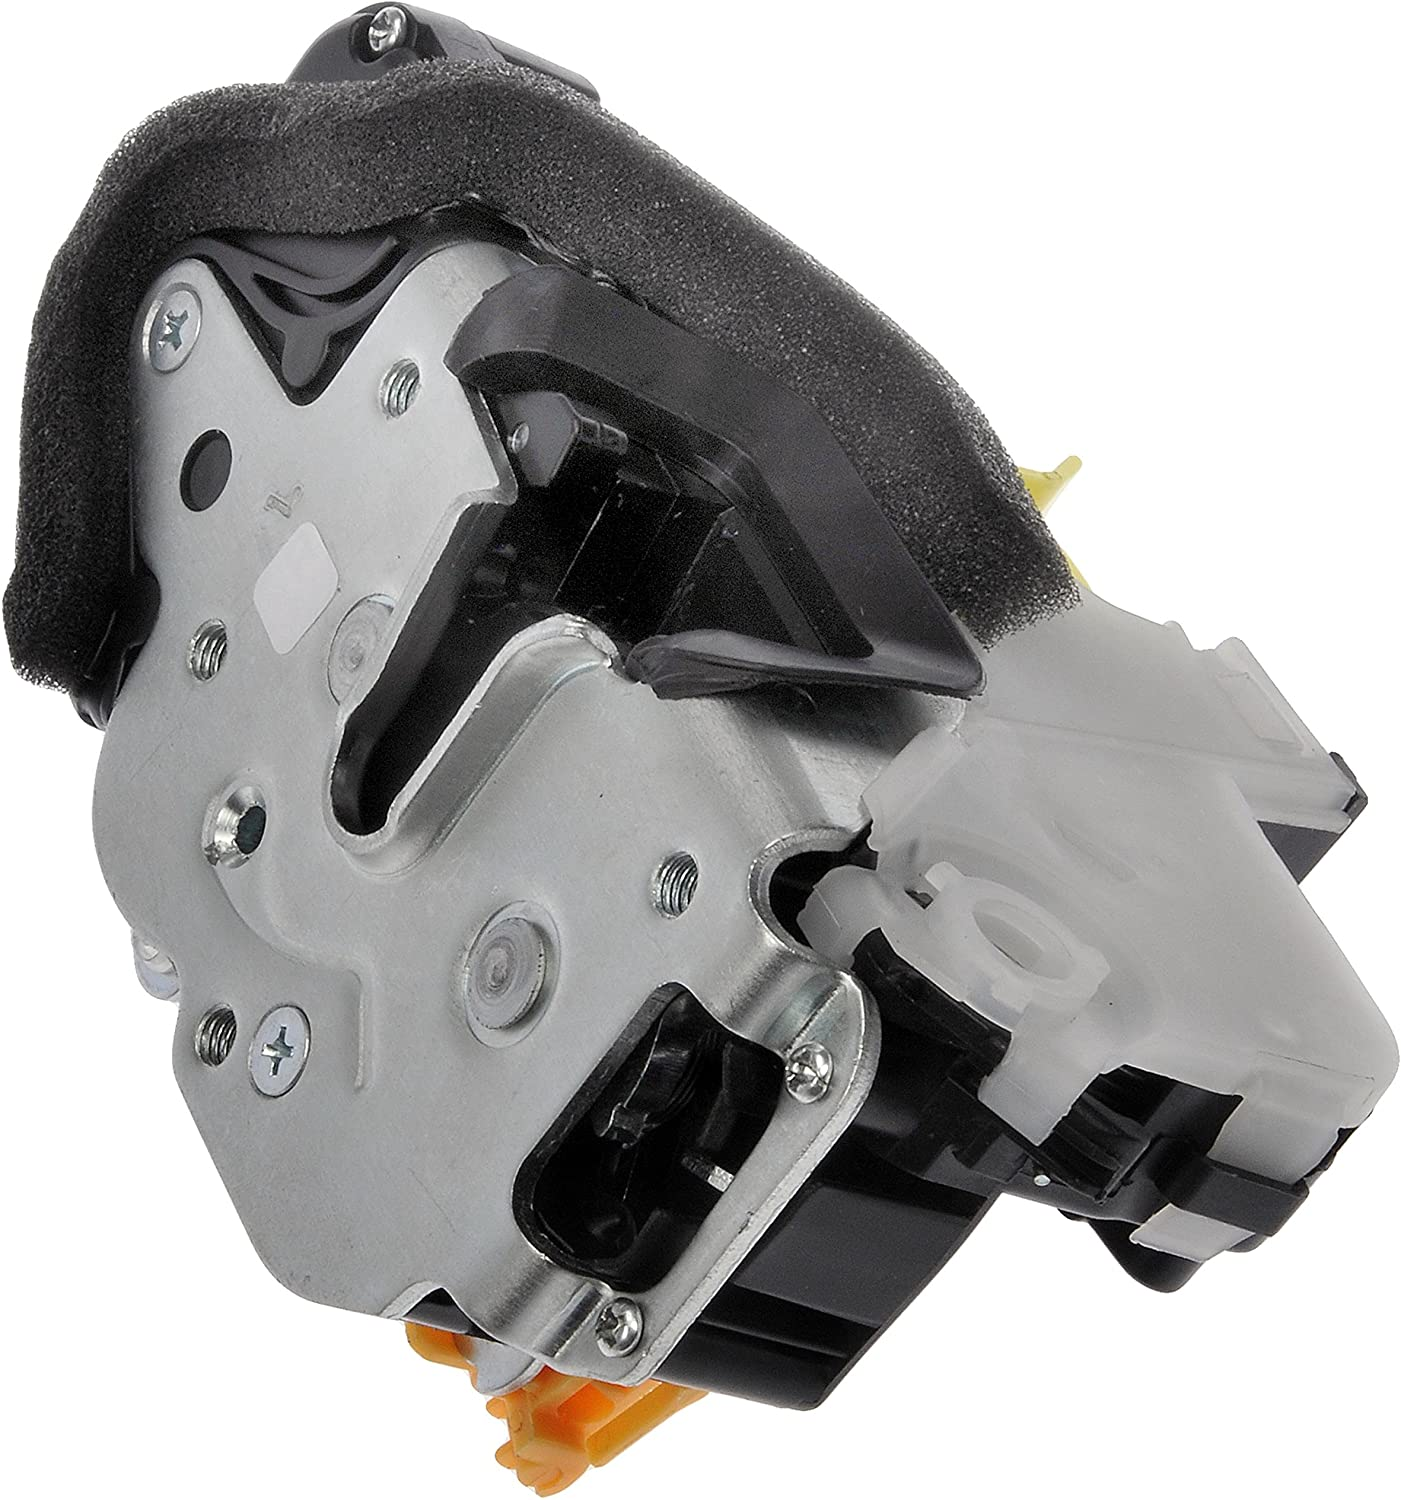 Dorman 931-314 Front Driver Side Door Lock Actuator Motor for Select Models